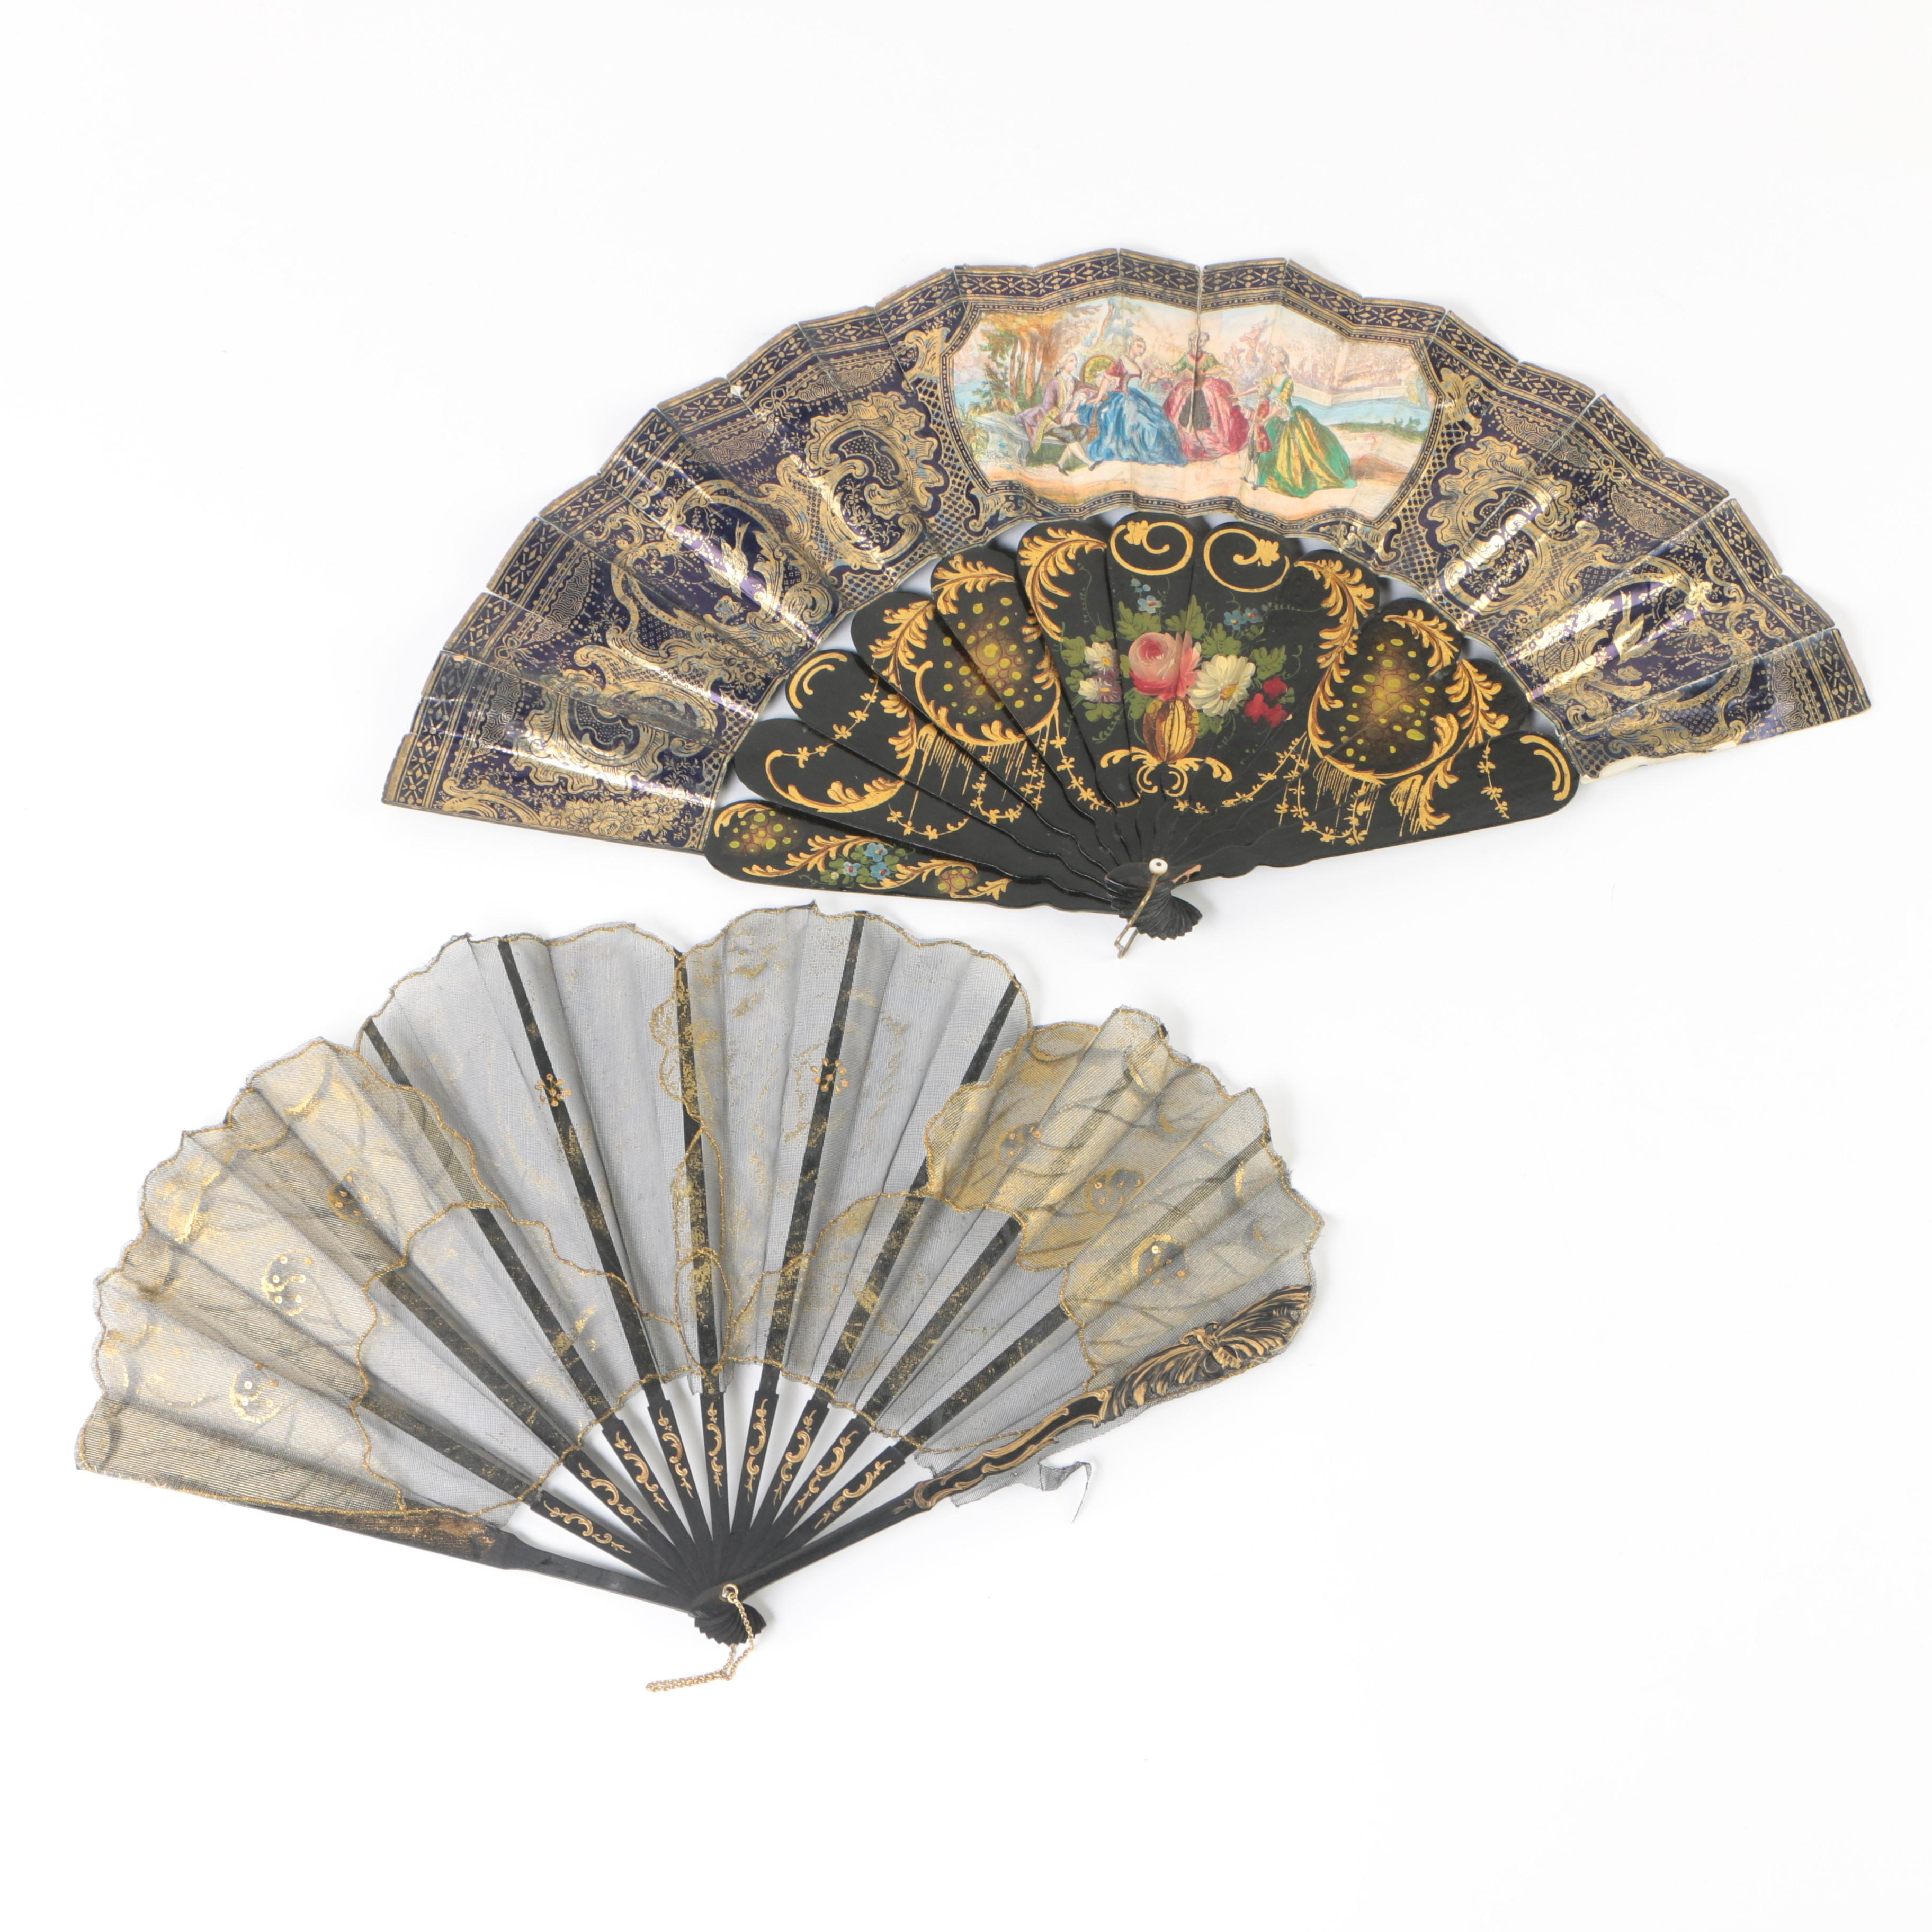 Antique Hand-Painted Wood and Cloth Folding Fans